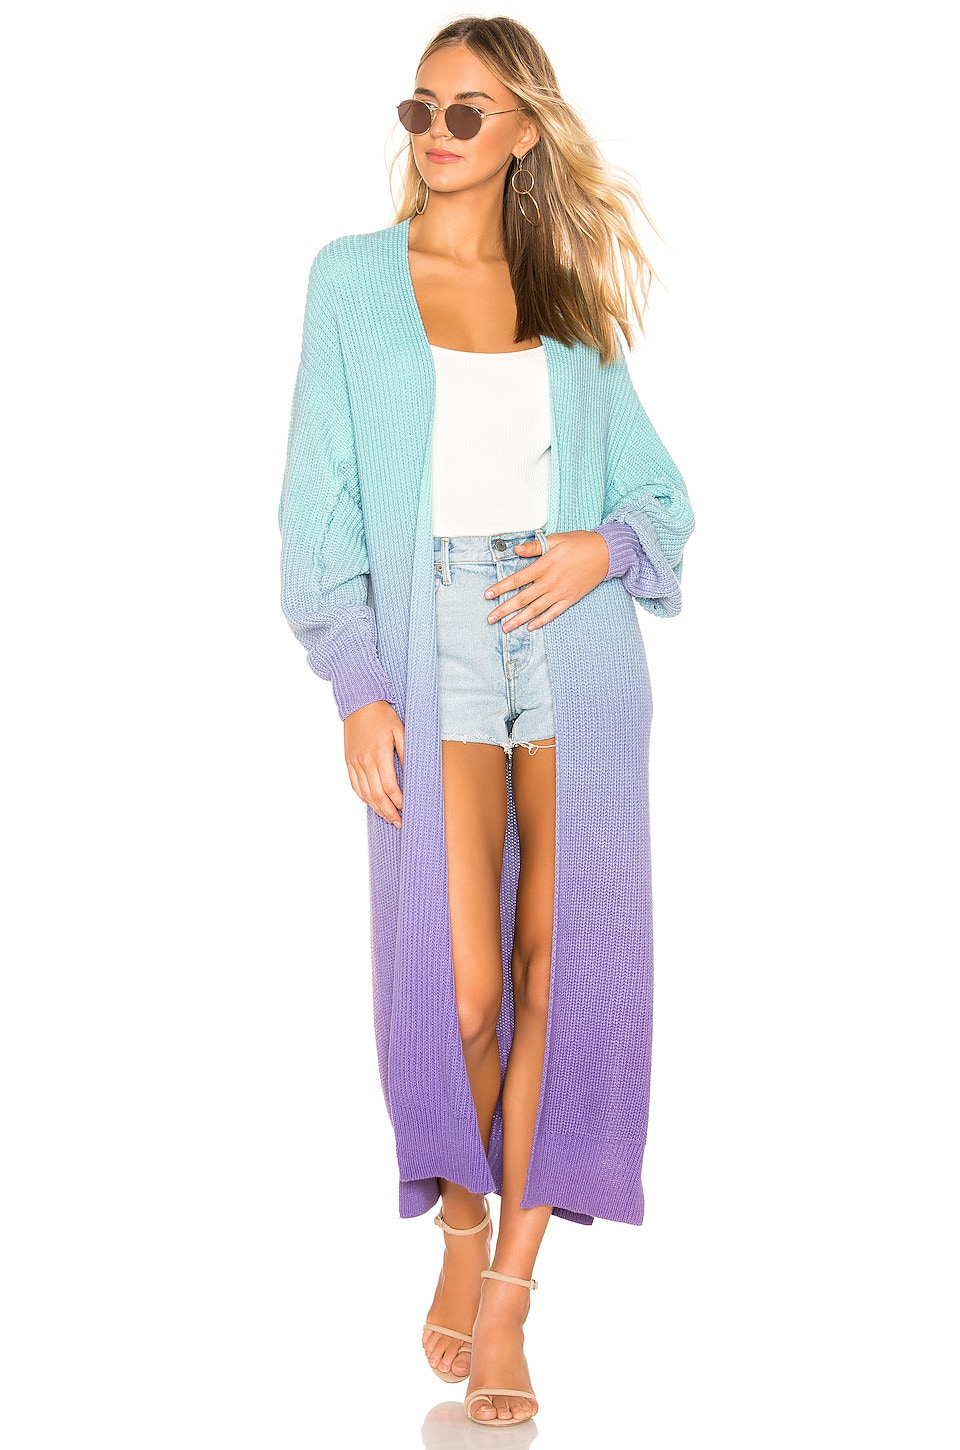 Free People Come Together Cardigan in Blue Combo